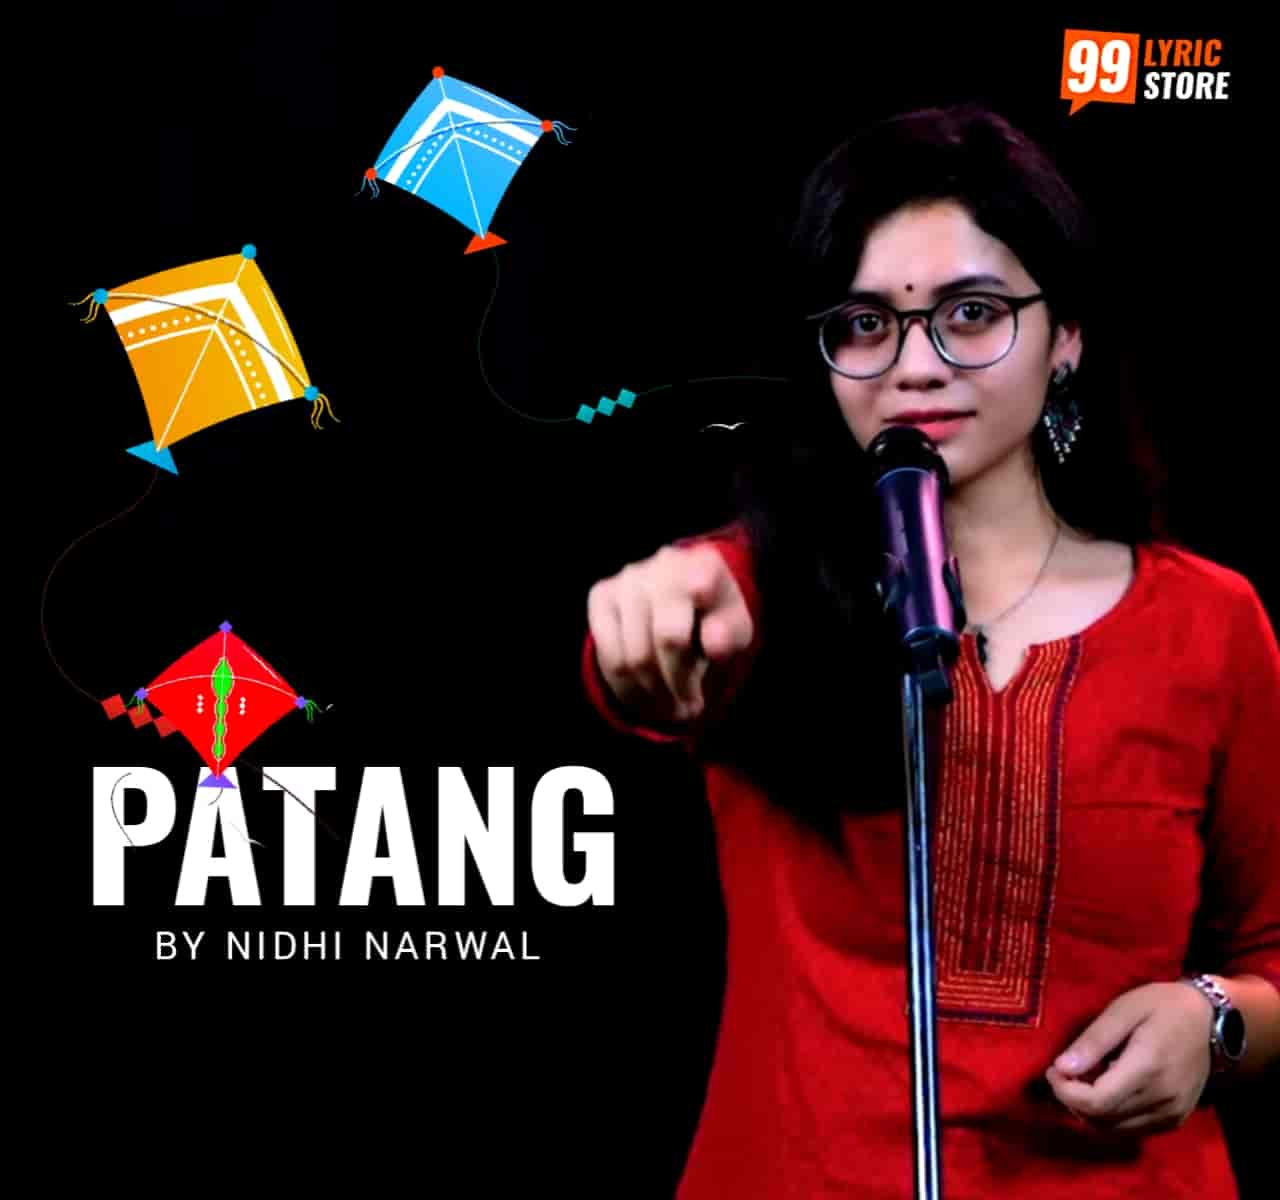 A very young, Famous and YouTube poetess Nidhi Narwal come back again with a beautiful poerty which is titled 'Patang'.